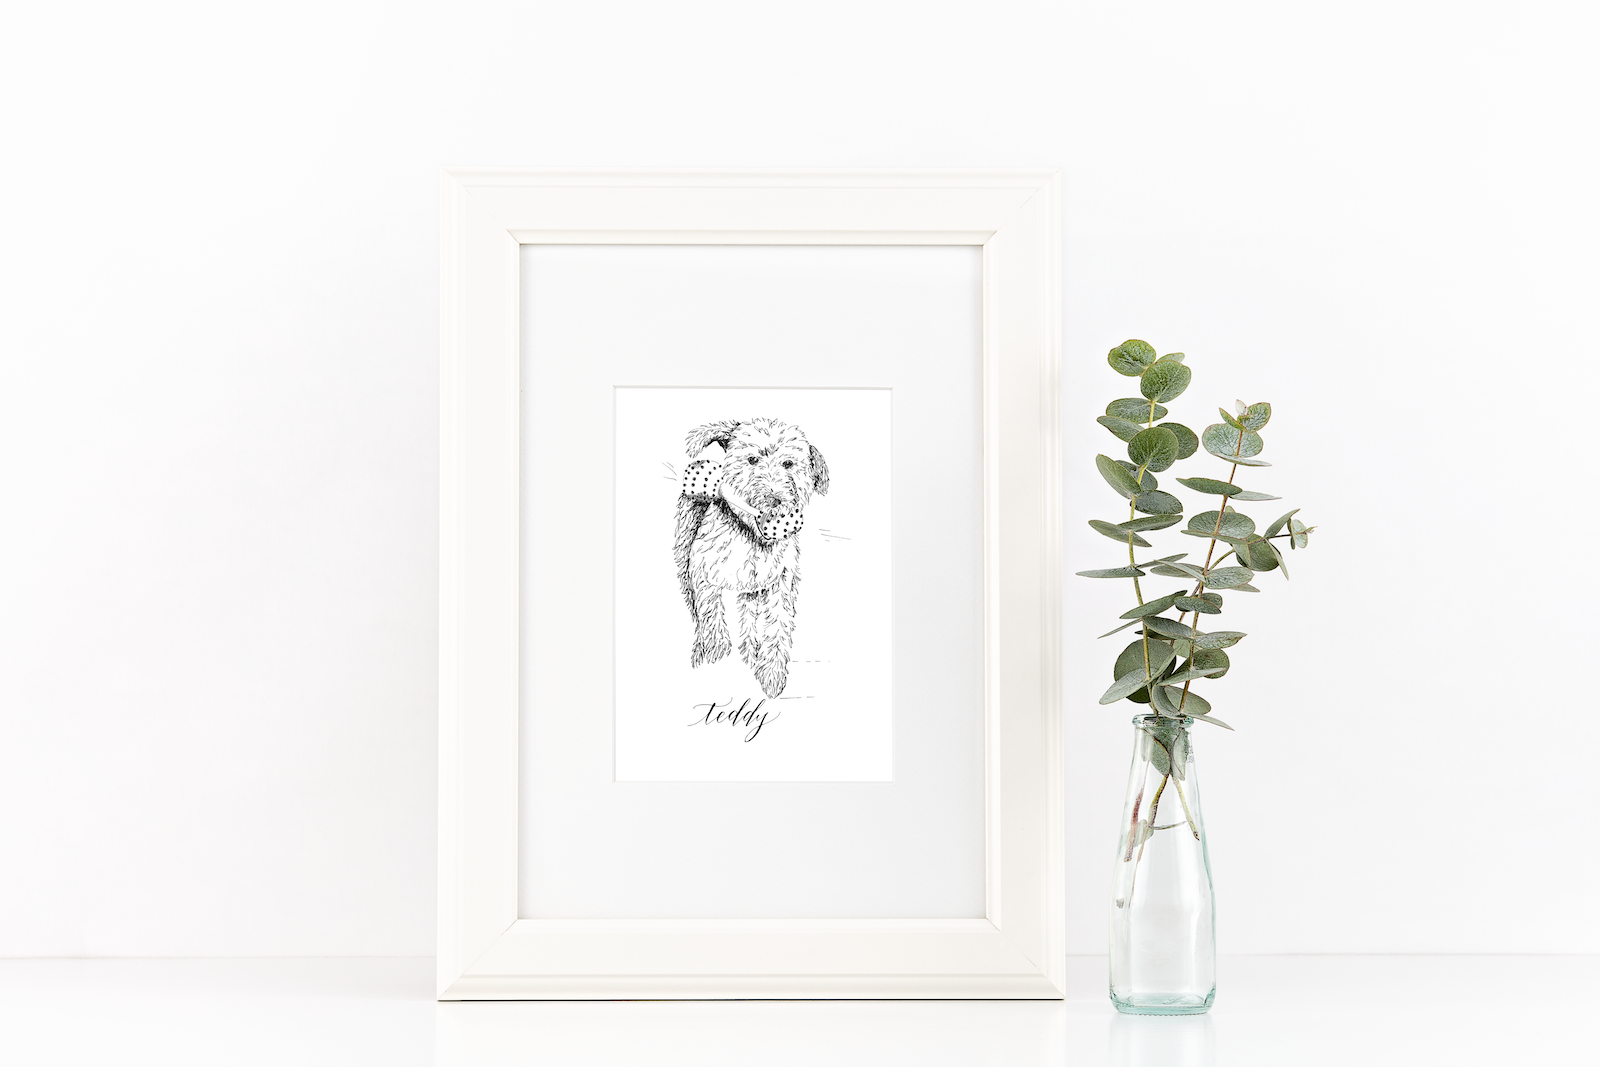 Line drawing of a dog, pet portrait, sketch - how to display art in your house - Leah E. Moss Designs